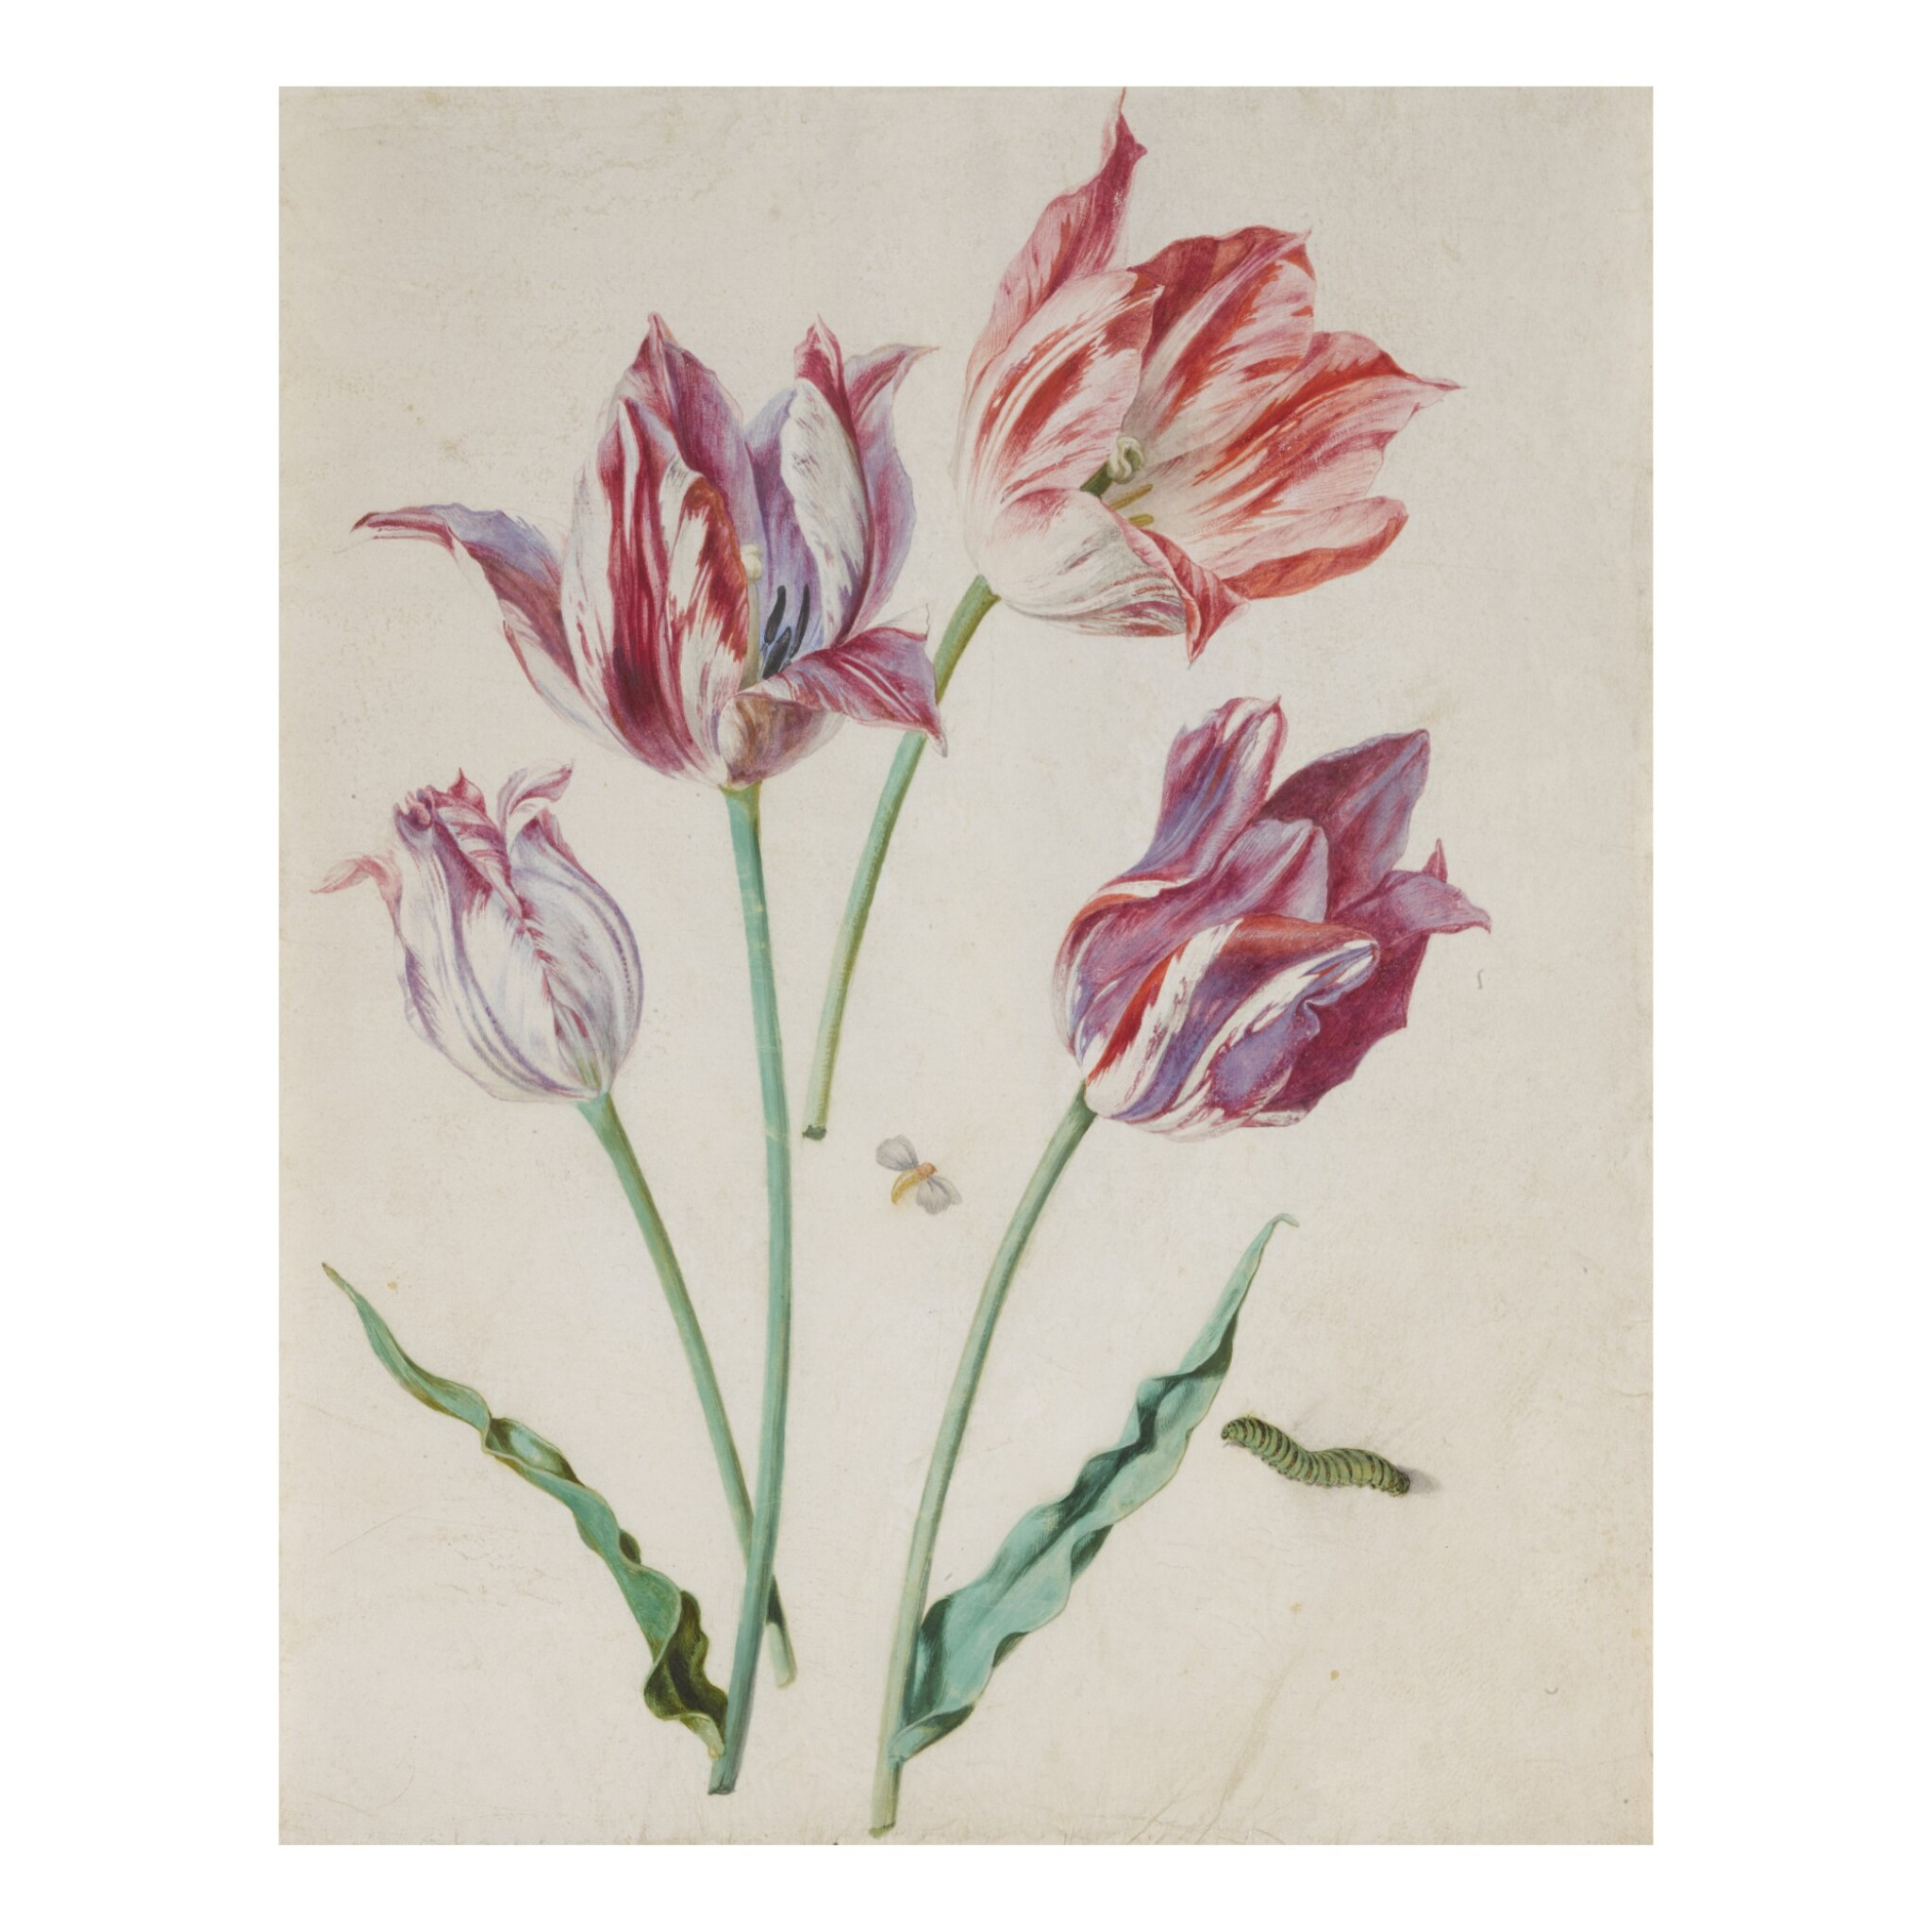 View full screen - View 1 of Lot 140. ATTRIBUTED TO CARL WILHELM DE HAMILTON   STUDIES OF TULIPS, WITH A MOTH AND CATERPILLAR.